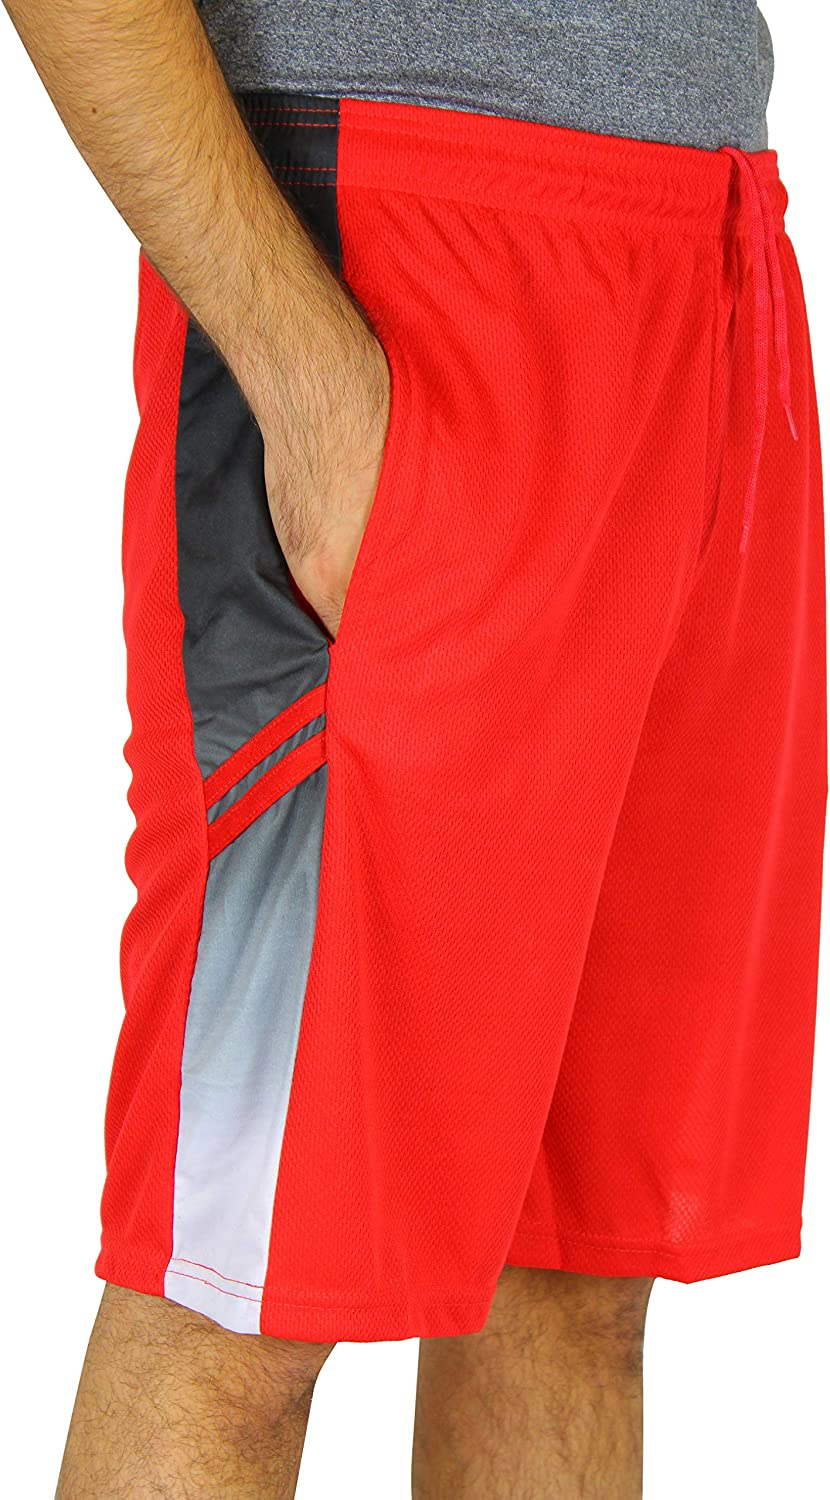 Real Essentials Mens Active Athletic Performance Shorts with Pockets - 5 Pack